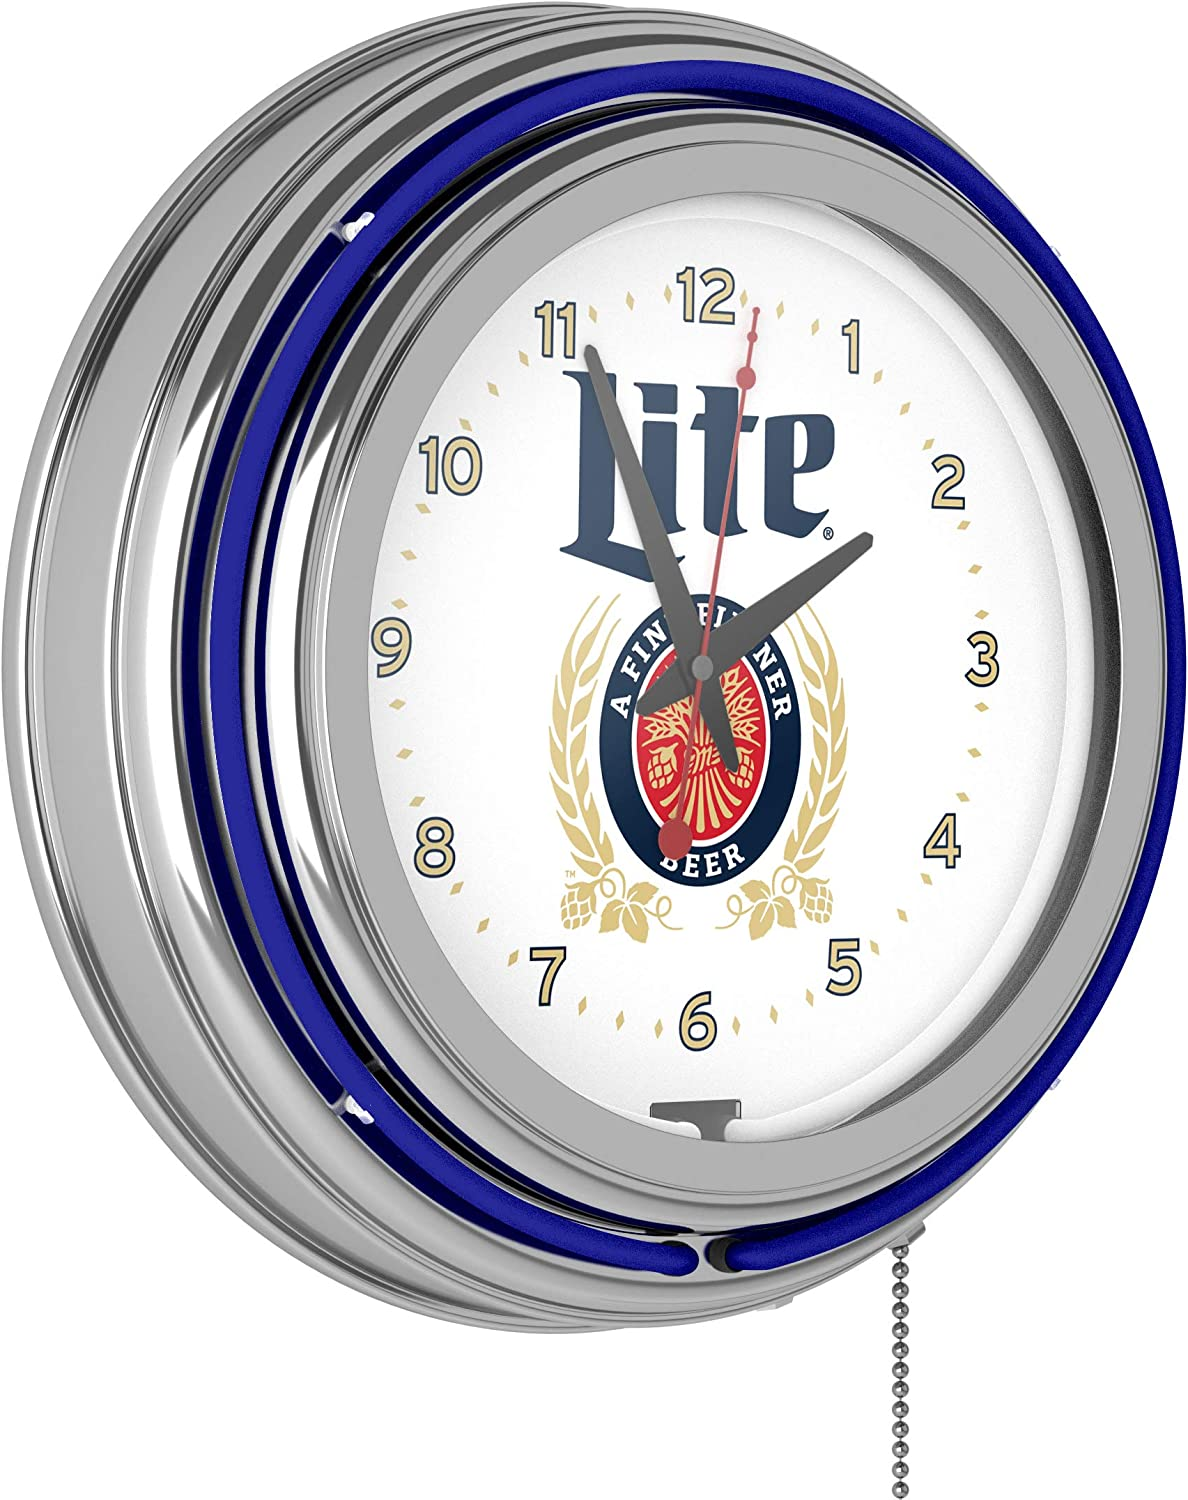 Trademark Gameroom Miller Lite Today's only Chrome Double Neon R Rung Latest item - Clock